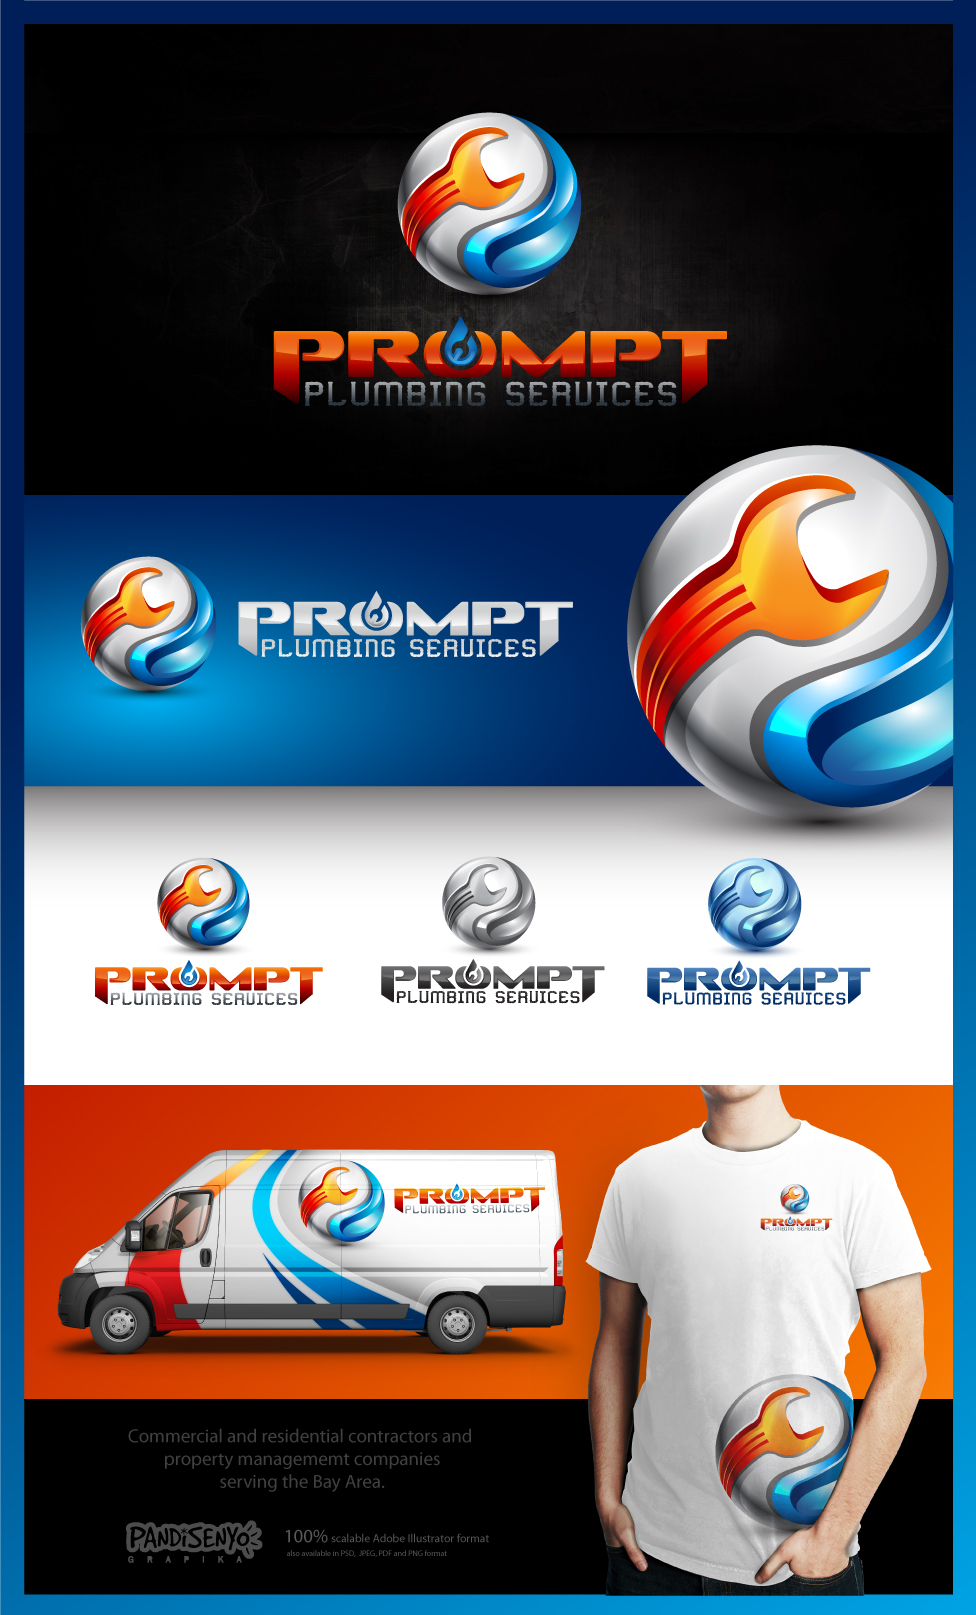 Logo Design by pandisenyo - Entry No. 83 in the Logo Design Contest Artistic Logo Design for Prompt Plumbing Services.